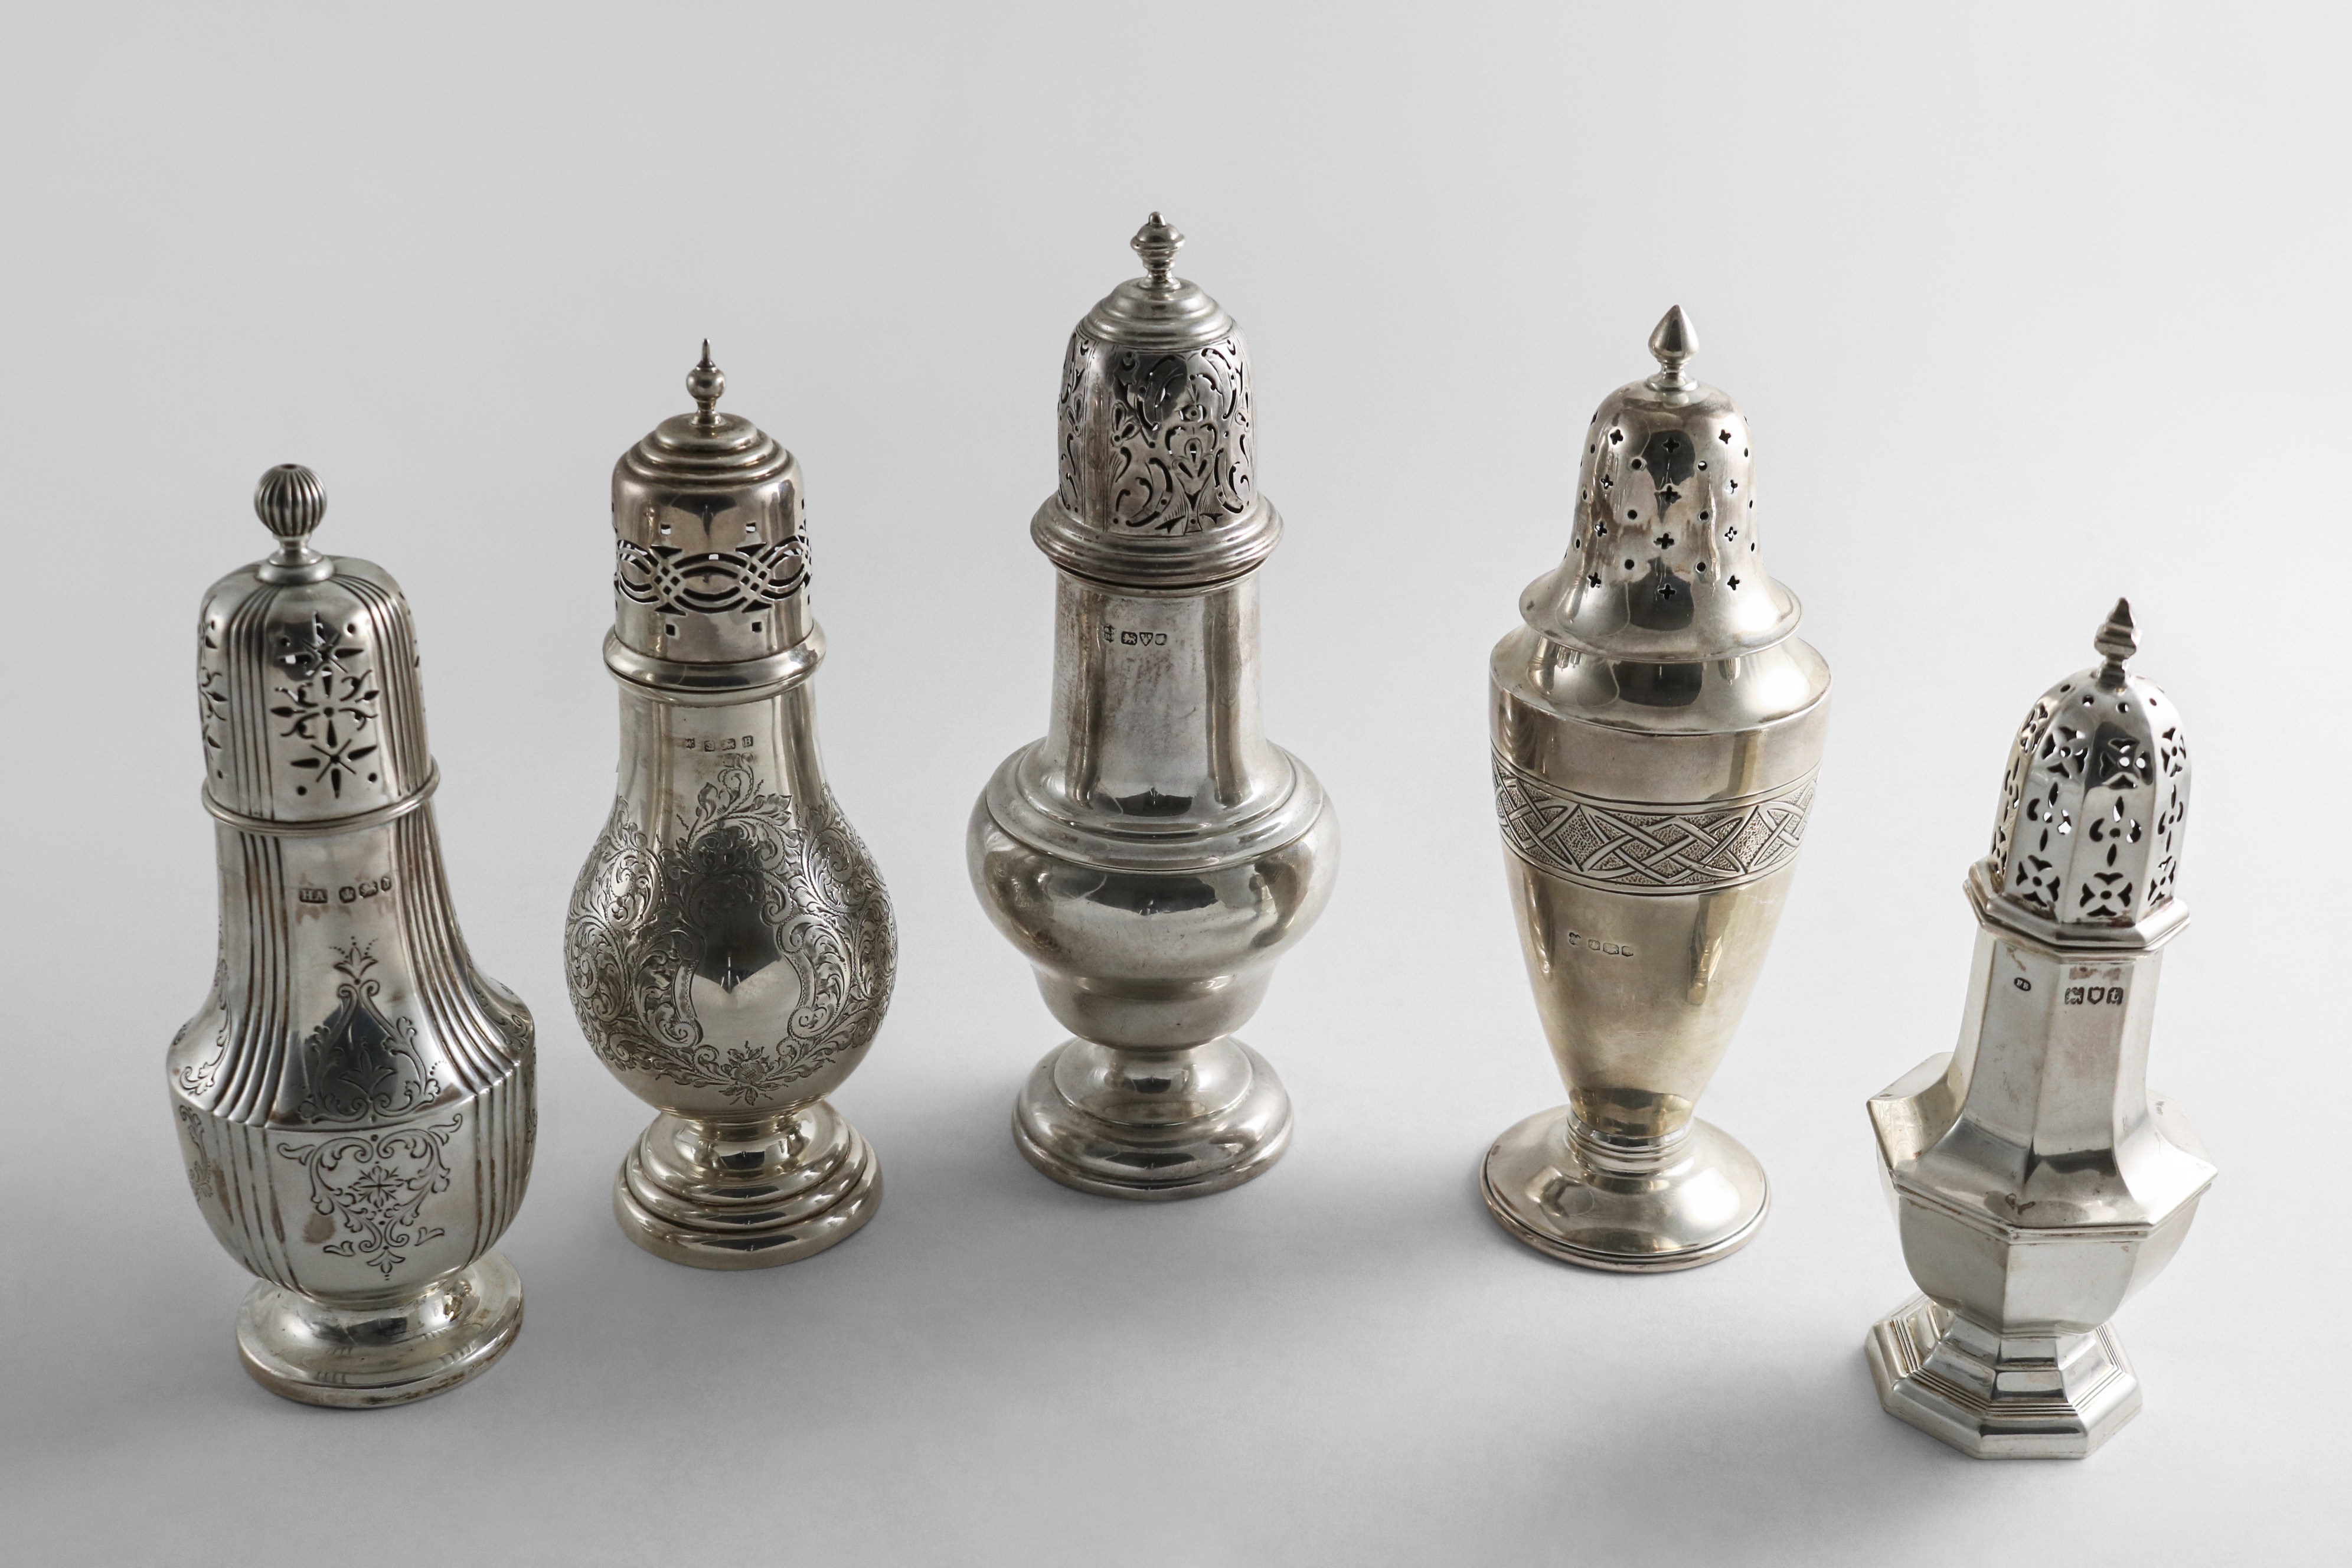 Lot 12 - A SMALL COLLECTION OF FIVE VARIOUS SILVER SUGAR CASTERS mixed designs, makers and dates,